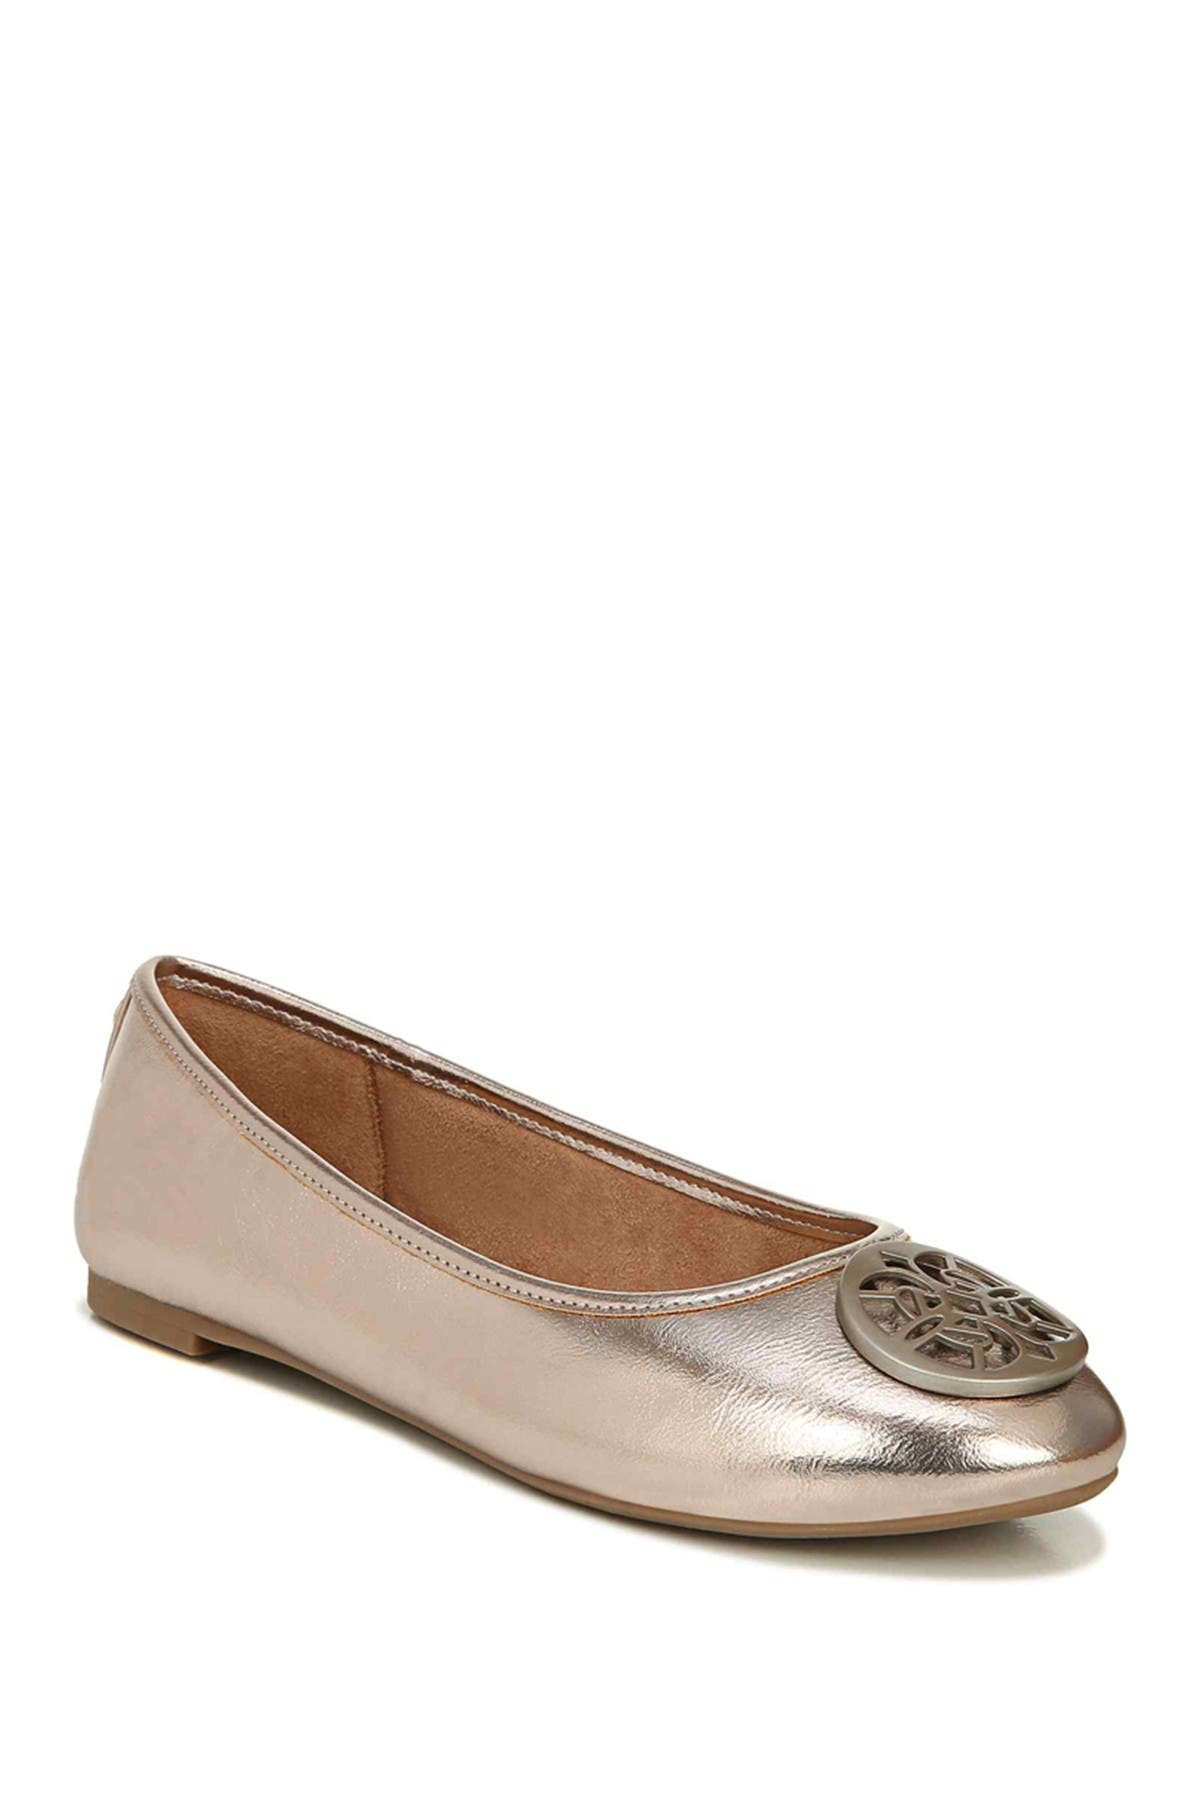 Image of CIRCUS BY SAM EDELMAN Colleen Skimmer Flat